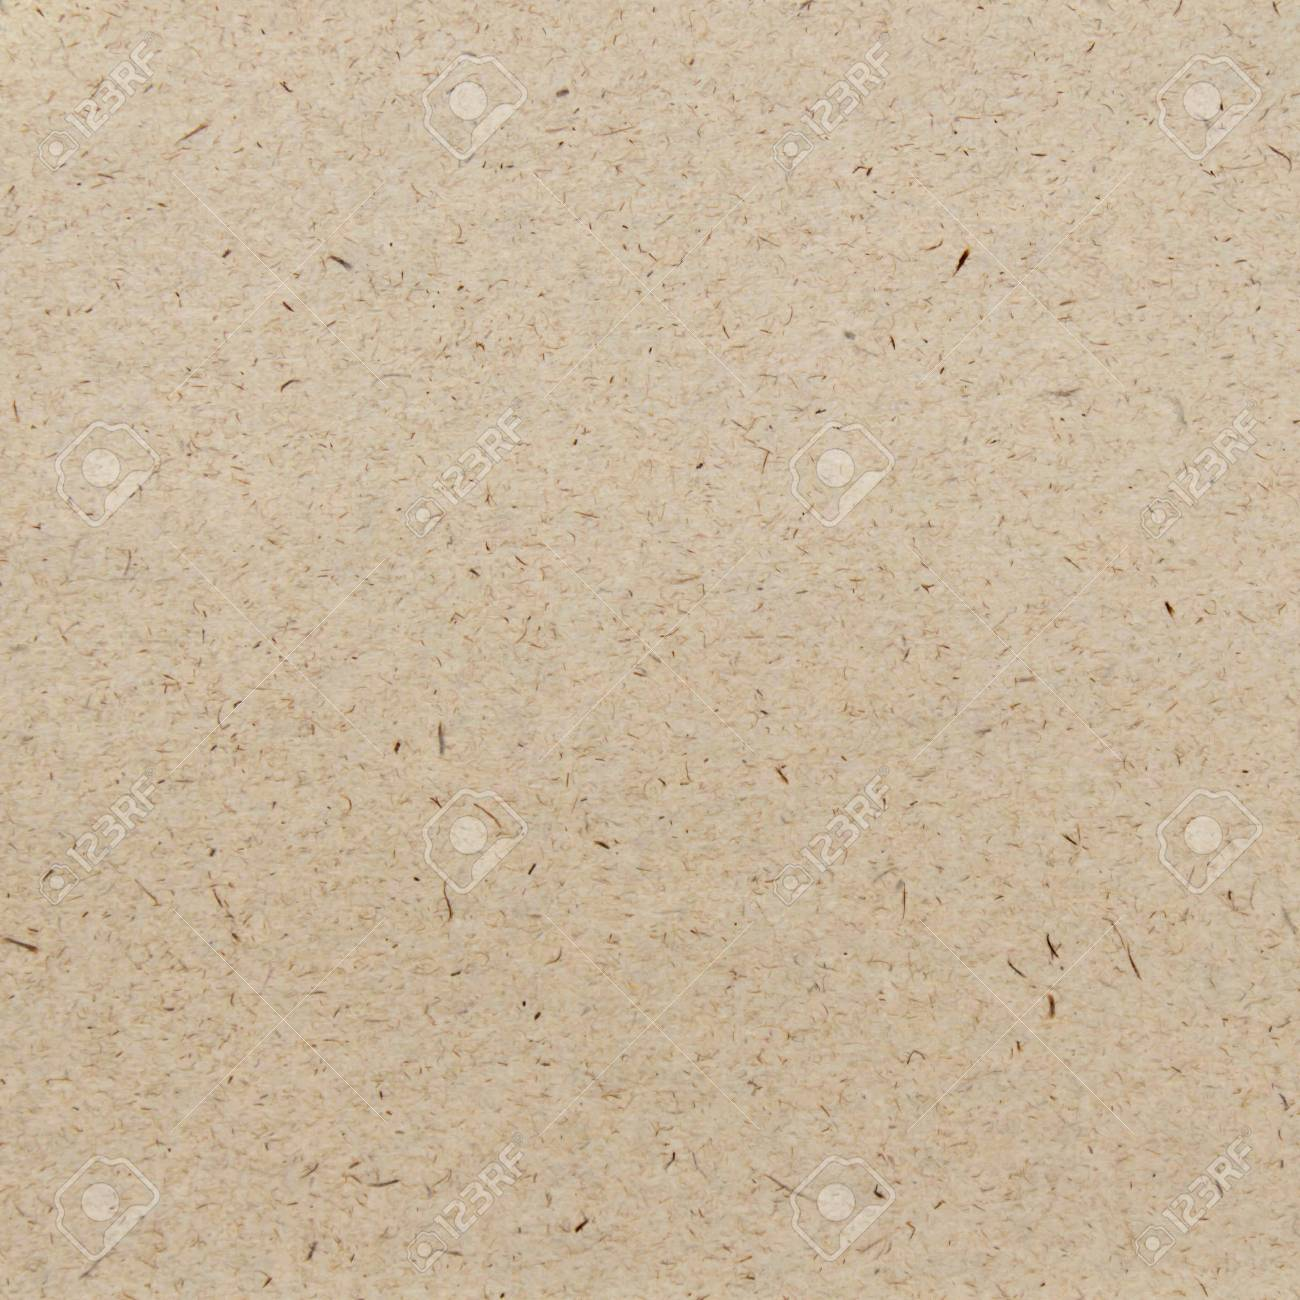 craft paper texture background stock photo picture and royalty free image image 77027972 craft paper texture background